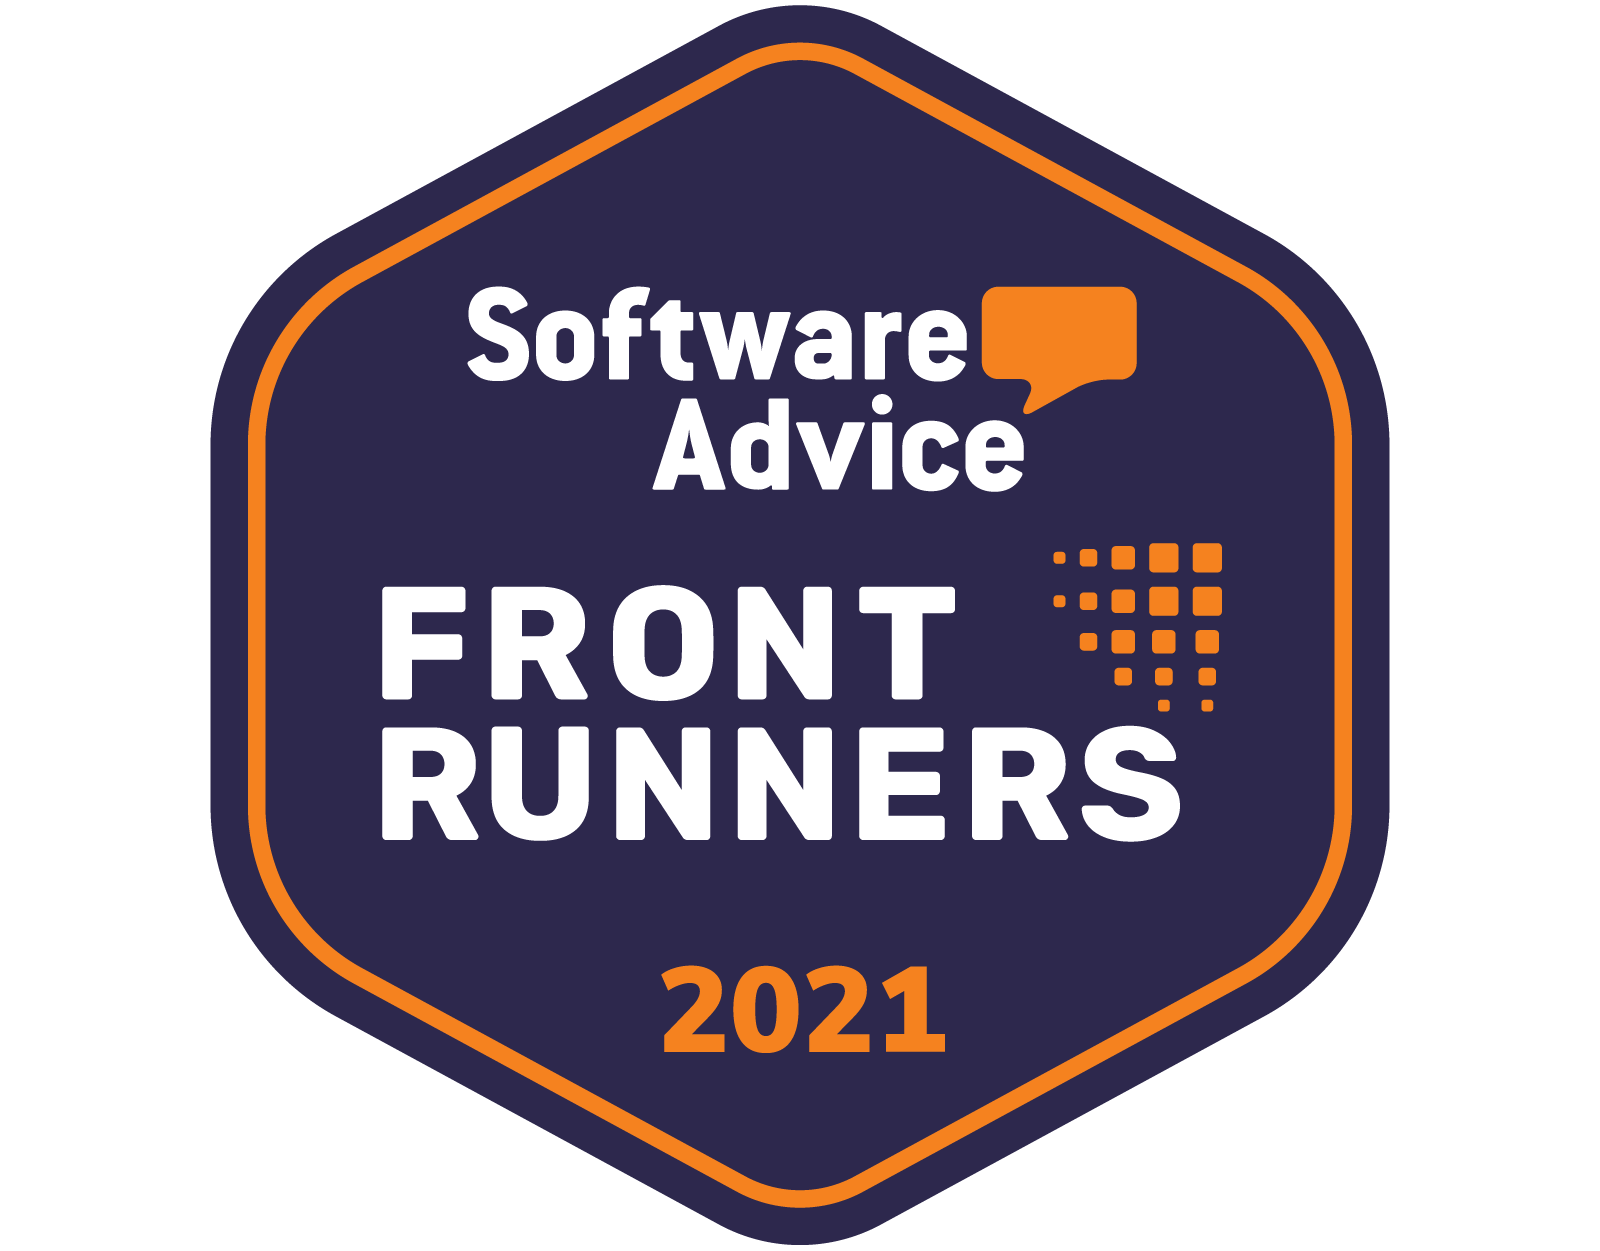 Software Advice Front Runners 2021 badge